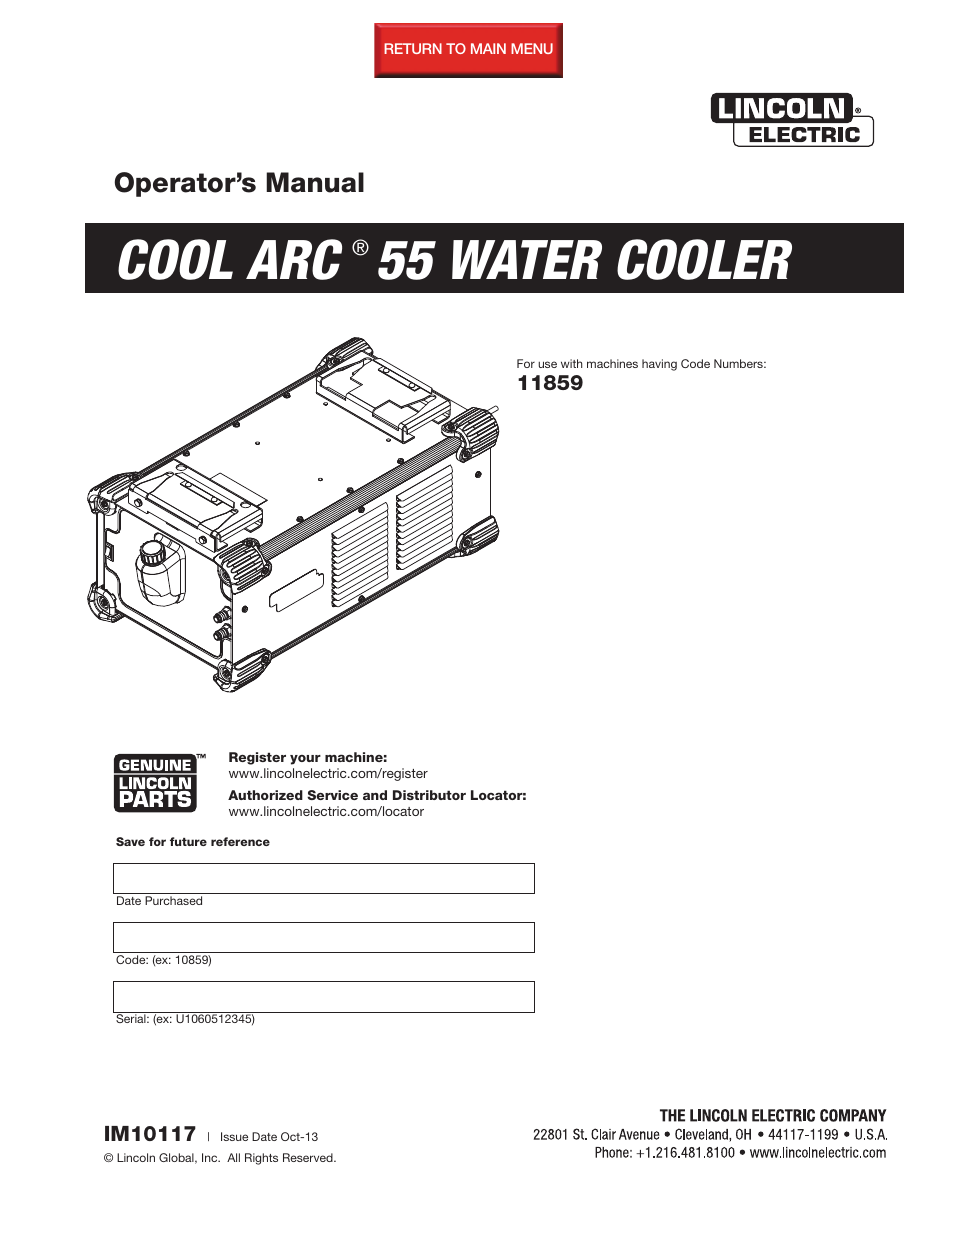 Diagram Of Distributor For Lincoln Welder Electrical Wiring Stick Water Cooler Schematic Trusted U2022 225 Arc